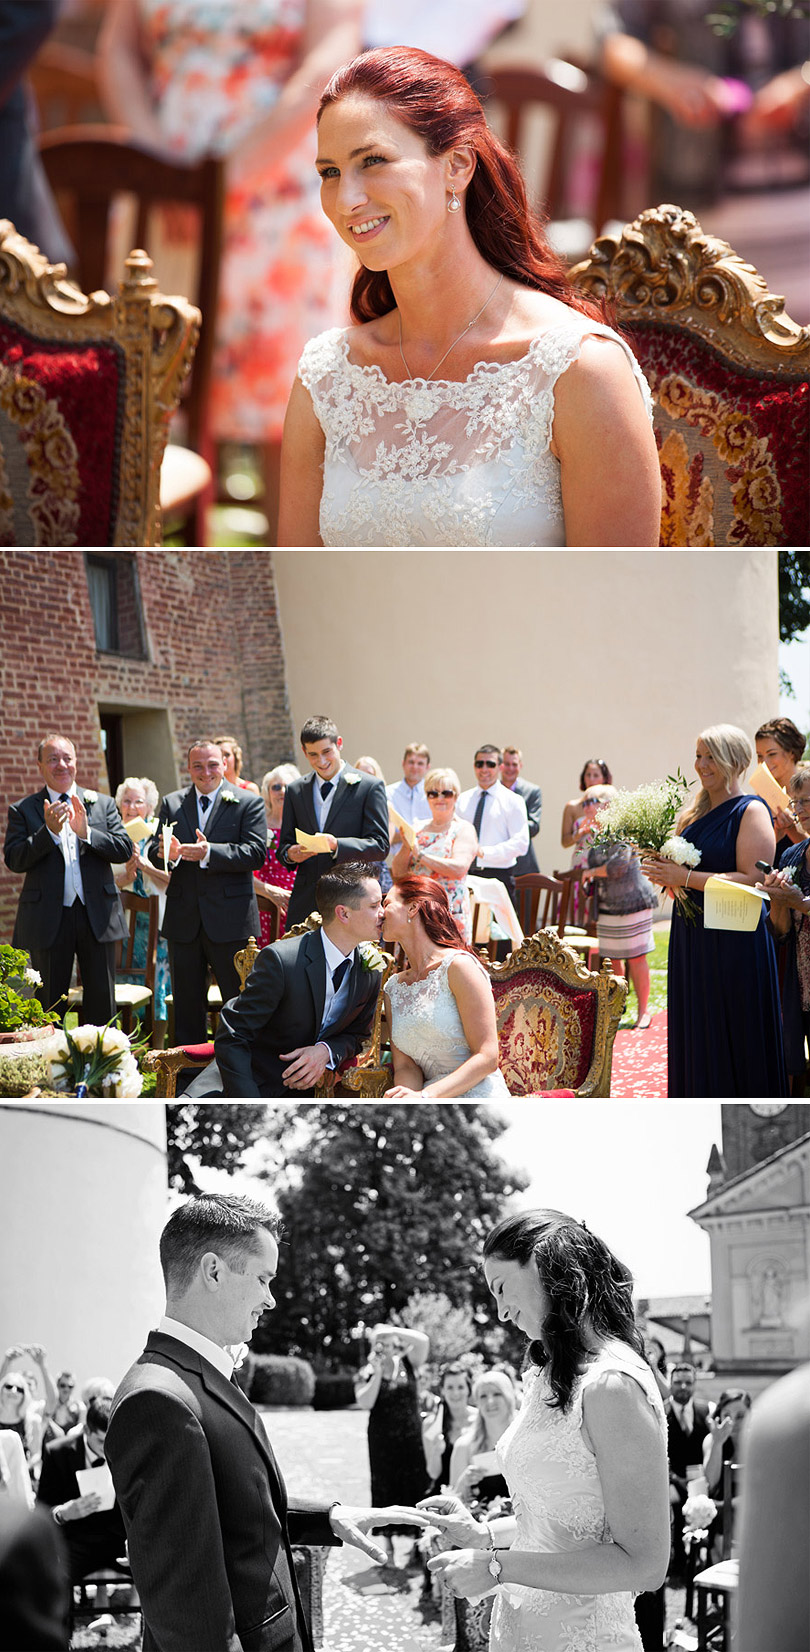 Casetello-di-Cortanze-Italian-Wedding-LilyandFrank-13.jpg